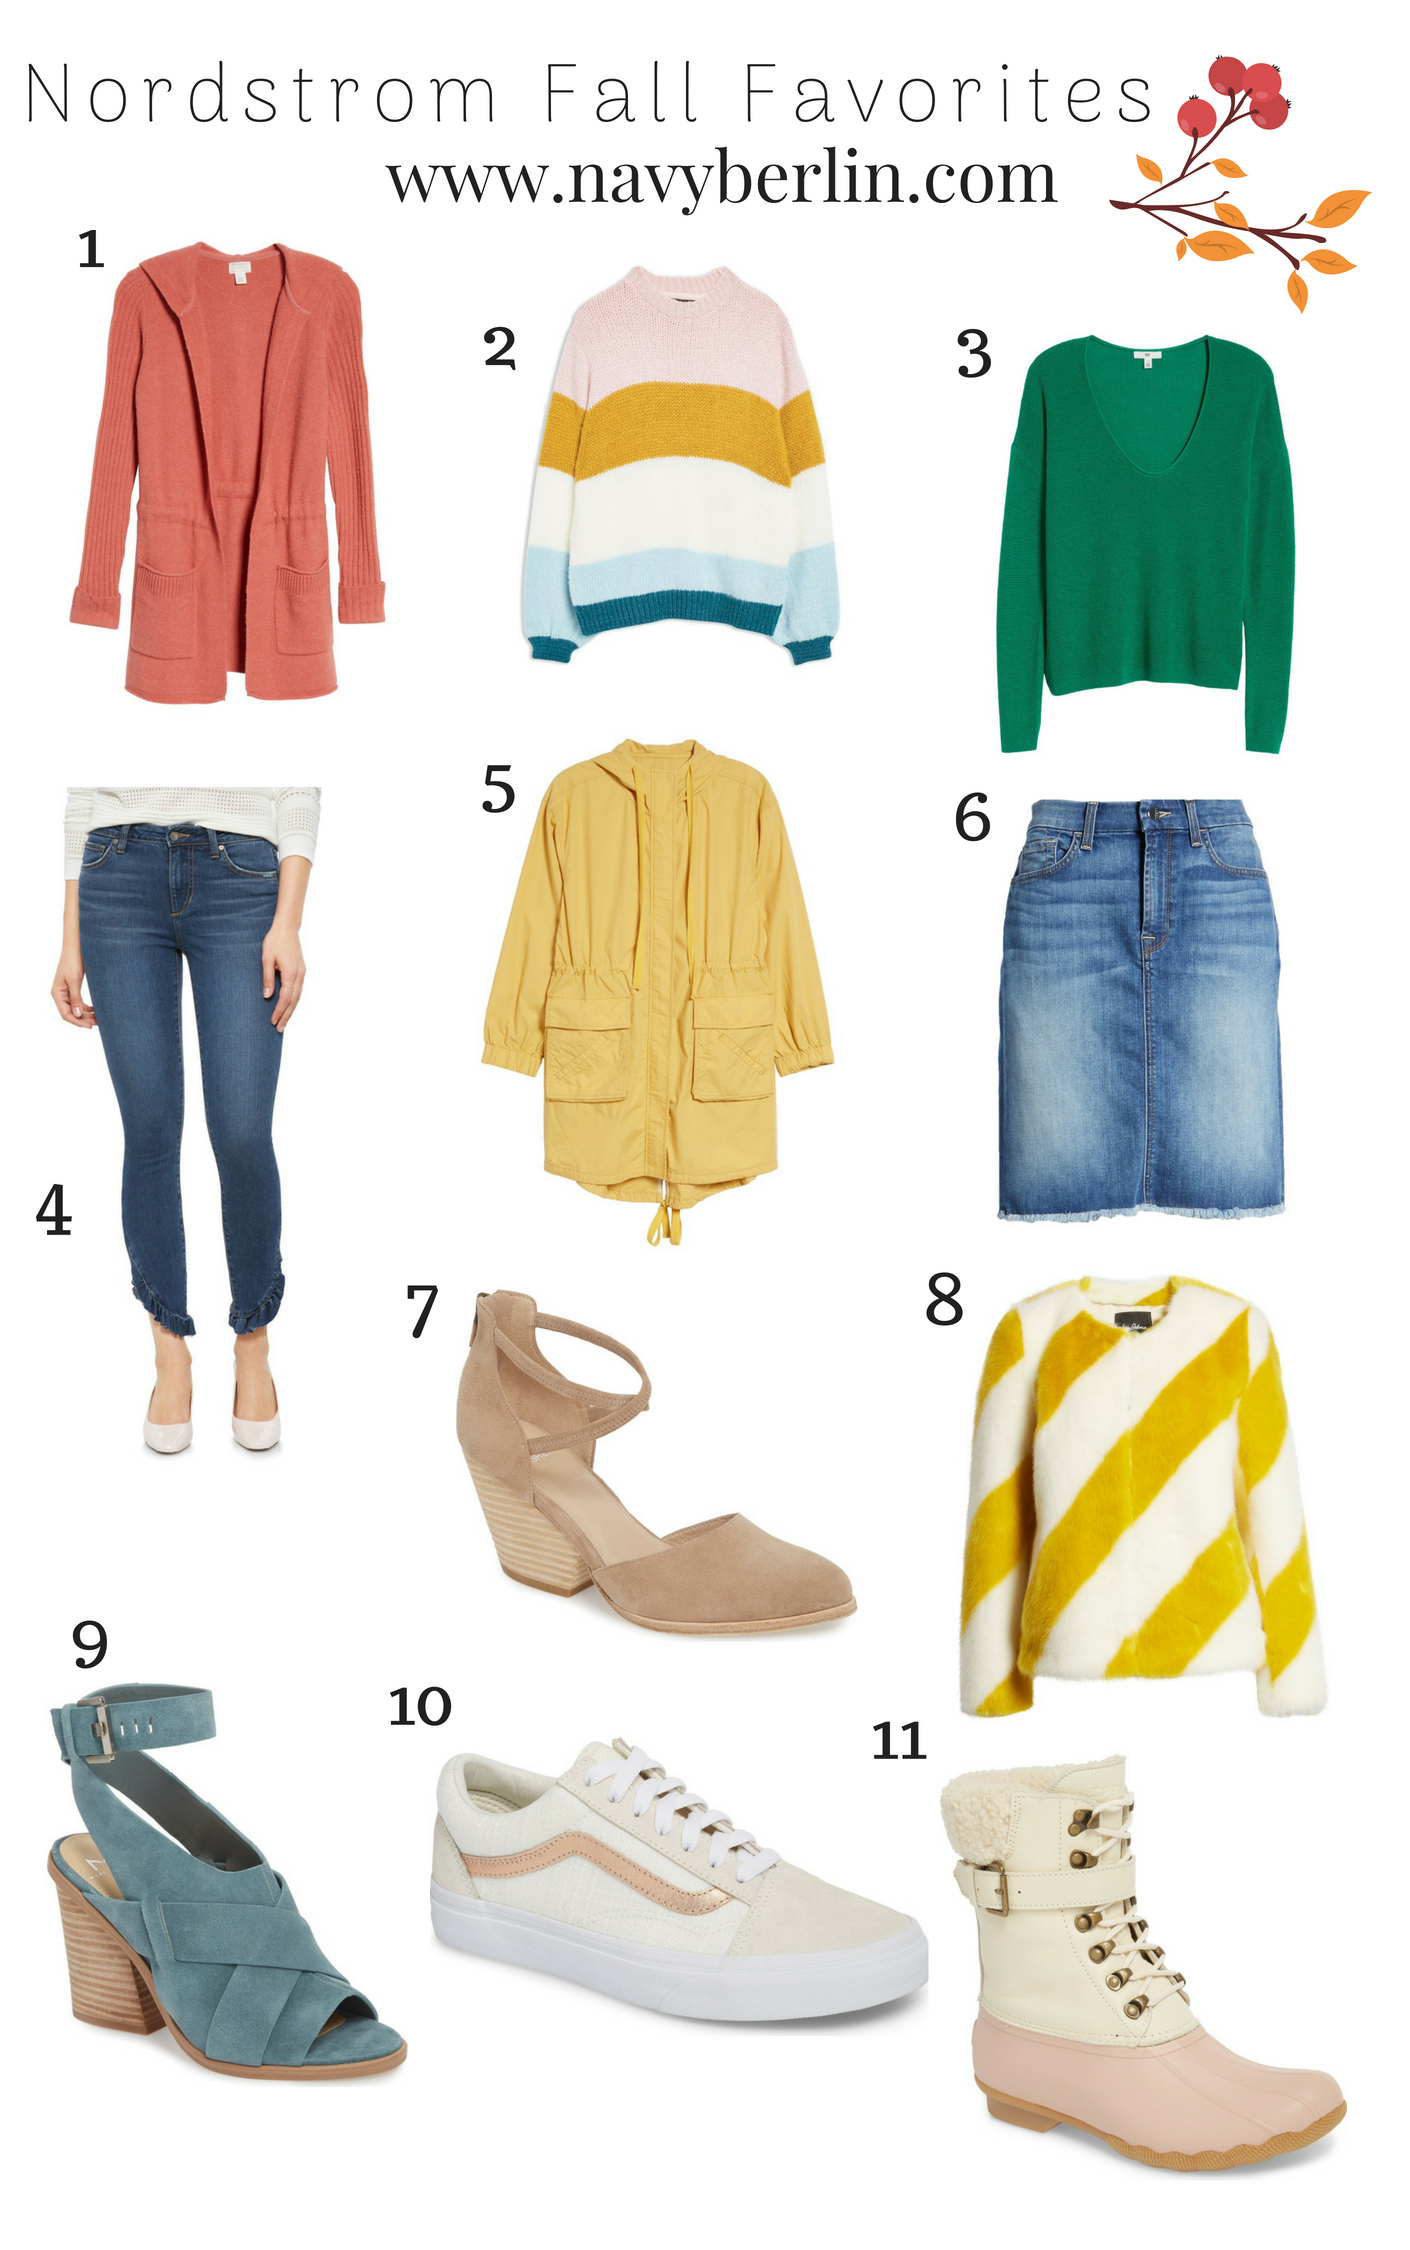 Nordstrom Fall Favorites